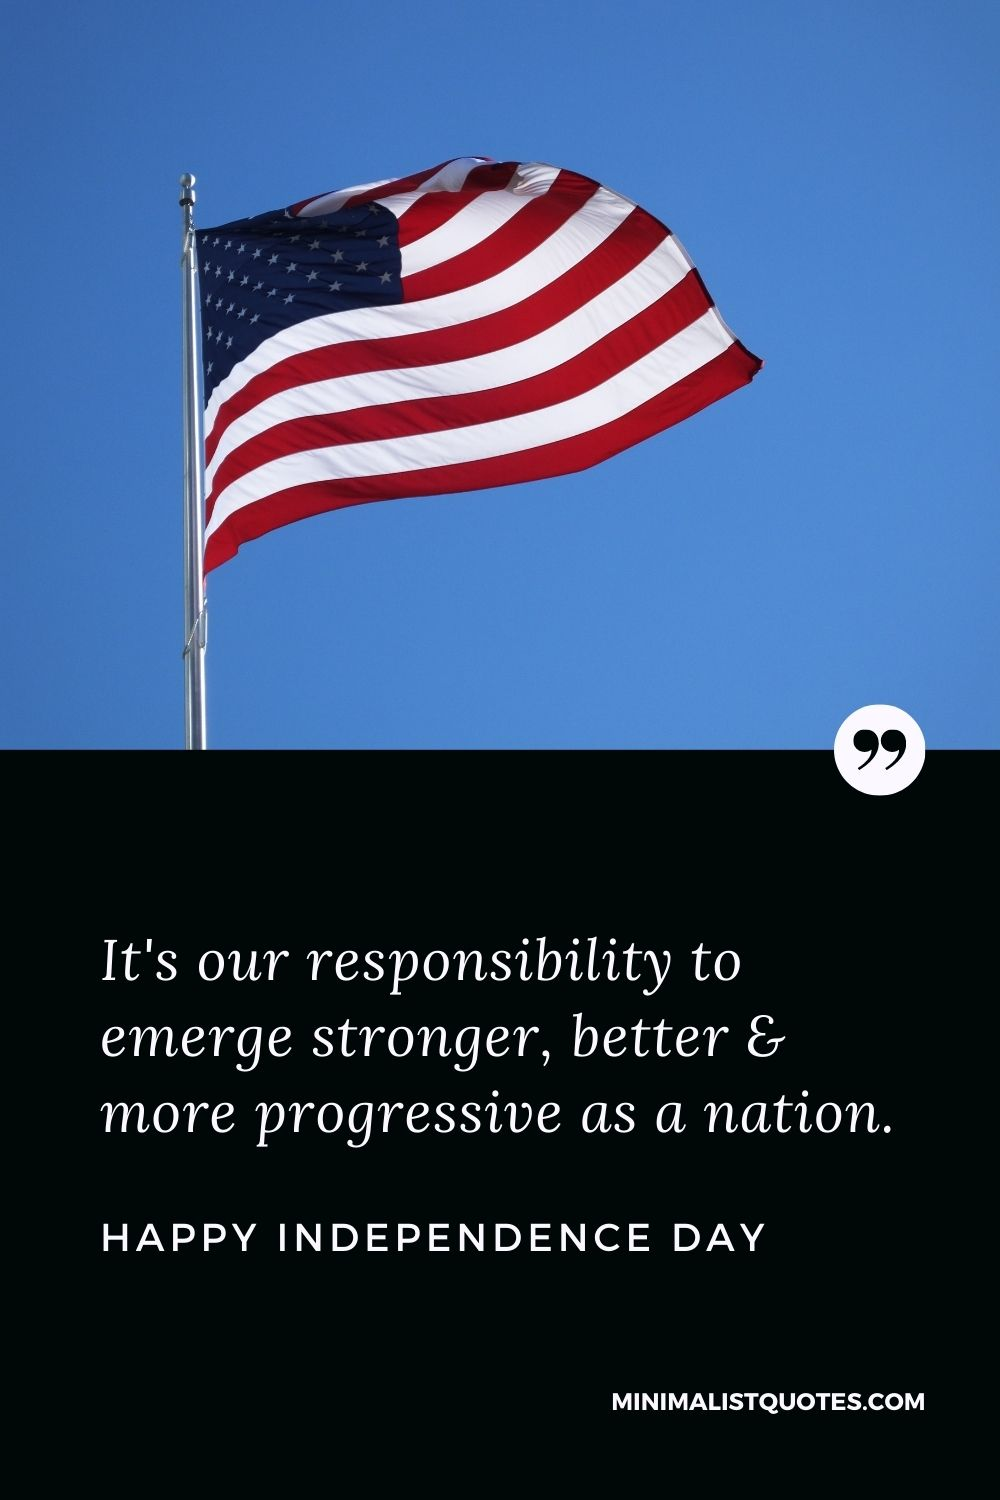 Independence Day Wish & Message With HD Image: It's our responsibility to emerge stronger, better & more progressive as a nation. Happy Independence Day!